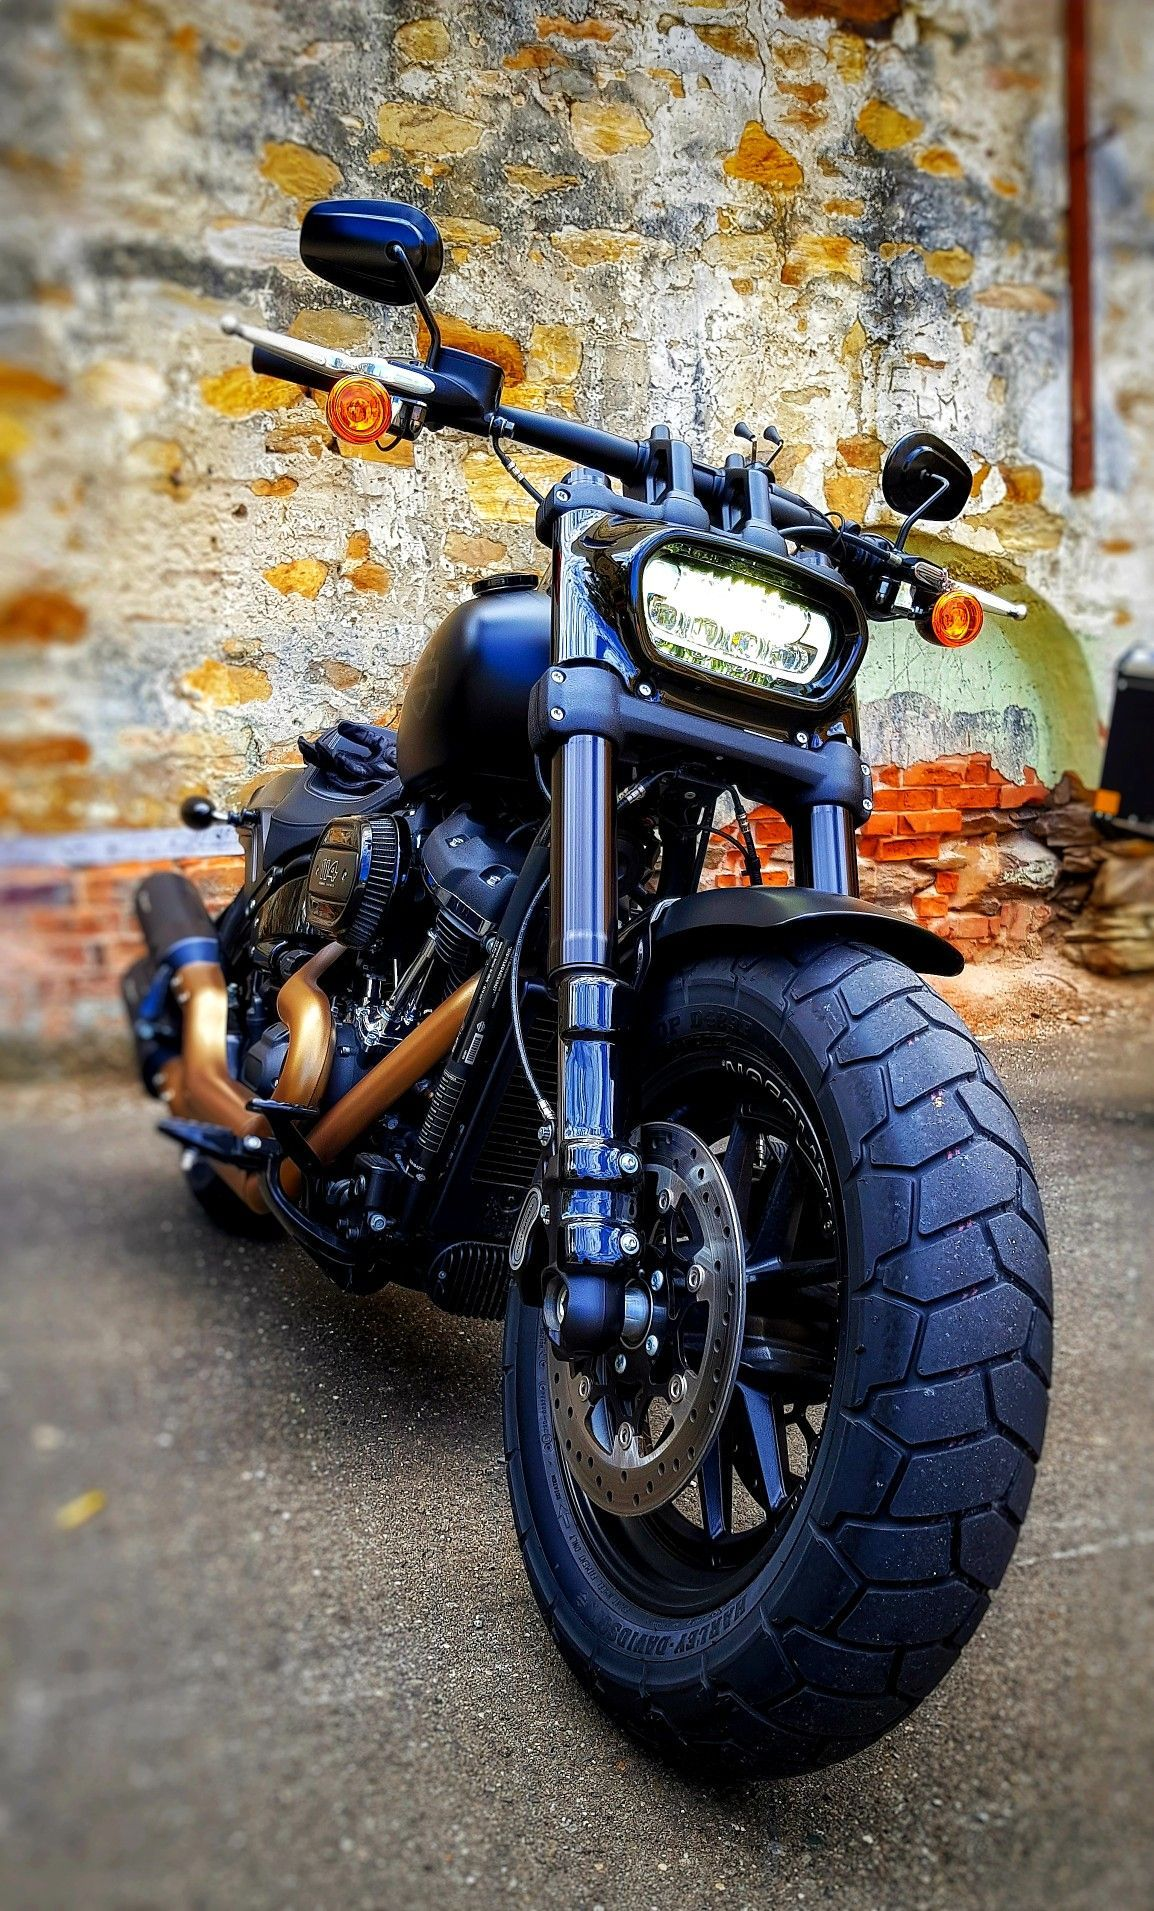 Pin By Xdziriusblackt61 Xdt6 On Motos In 2020 Motorcycle Wallpaper Car Iphone Wallpaper Harley Davidson Wallpaper